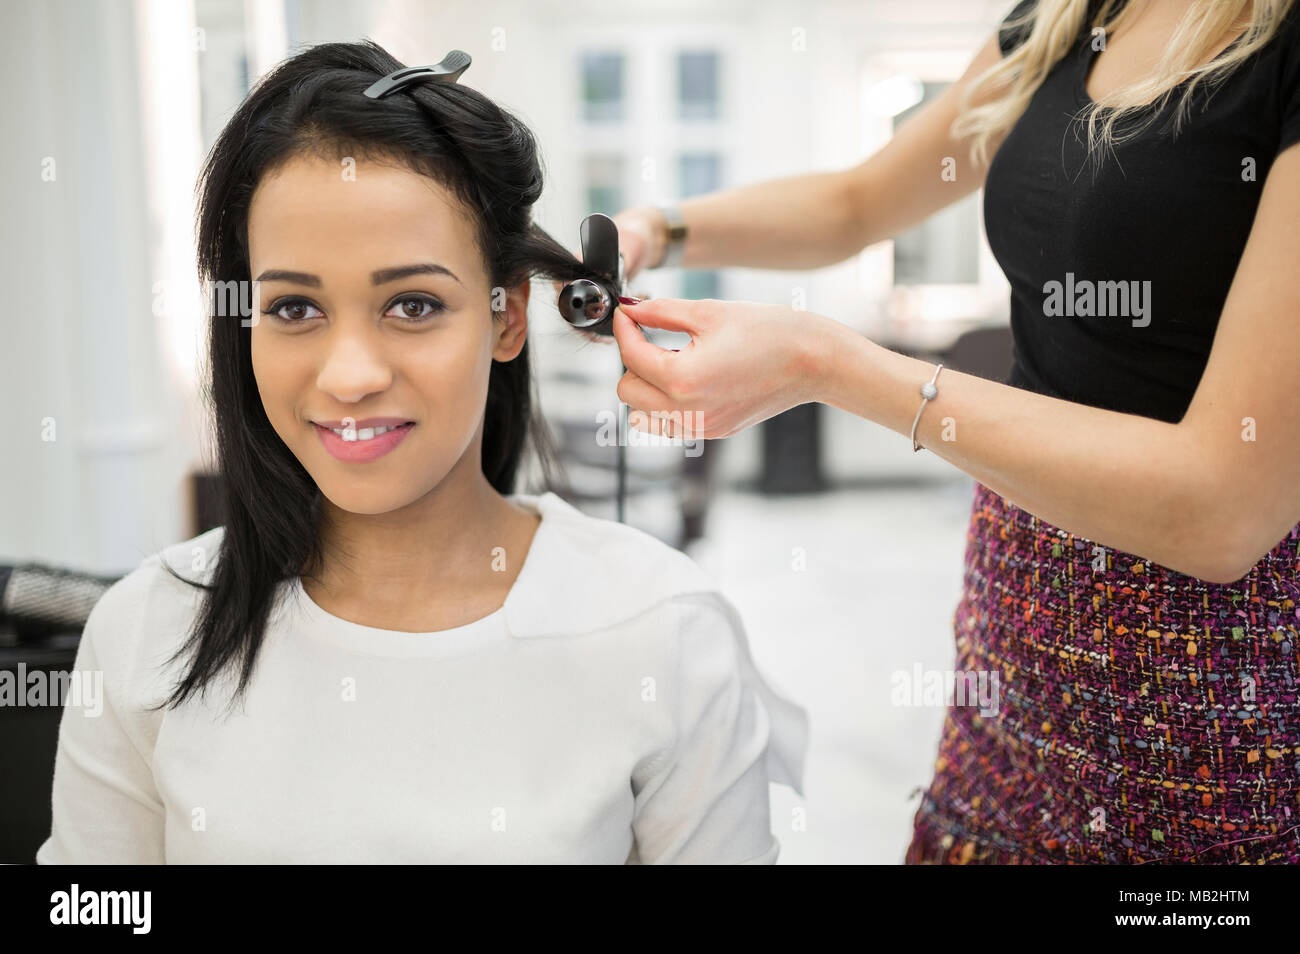 Portrait of happy woman having hair curled by hairdresser - Stock Image